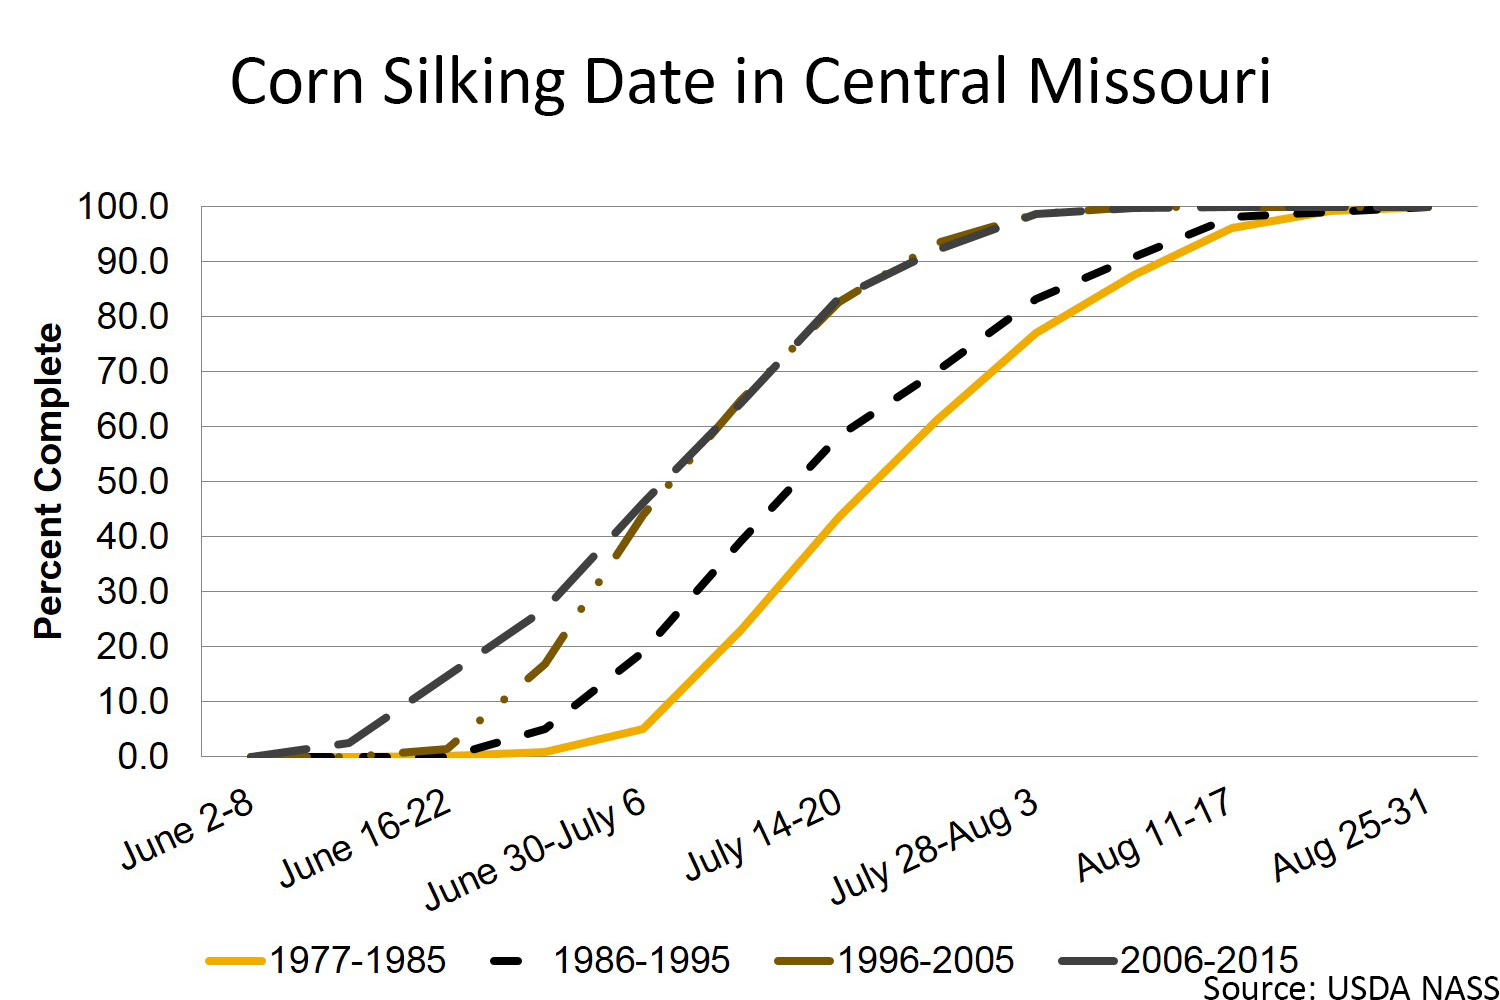 Corn silking date in central Missouri chart